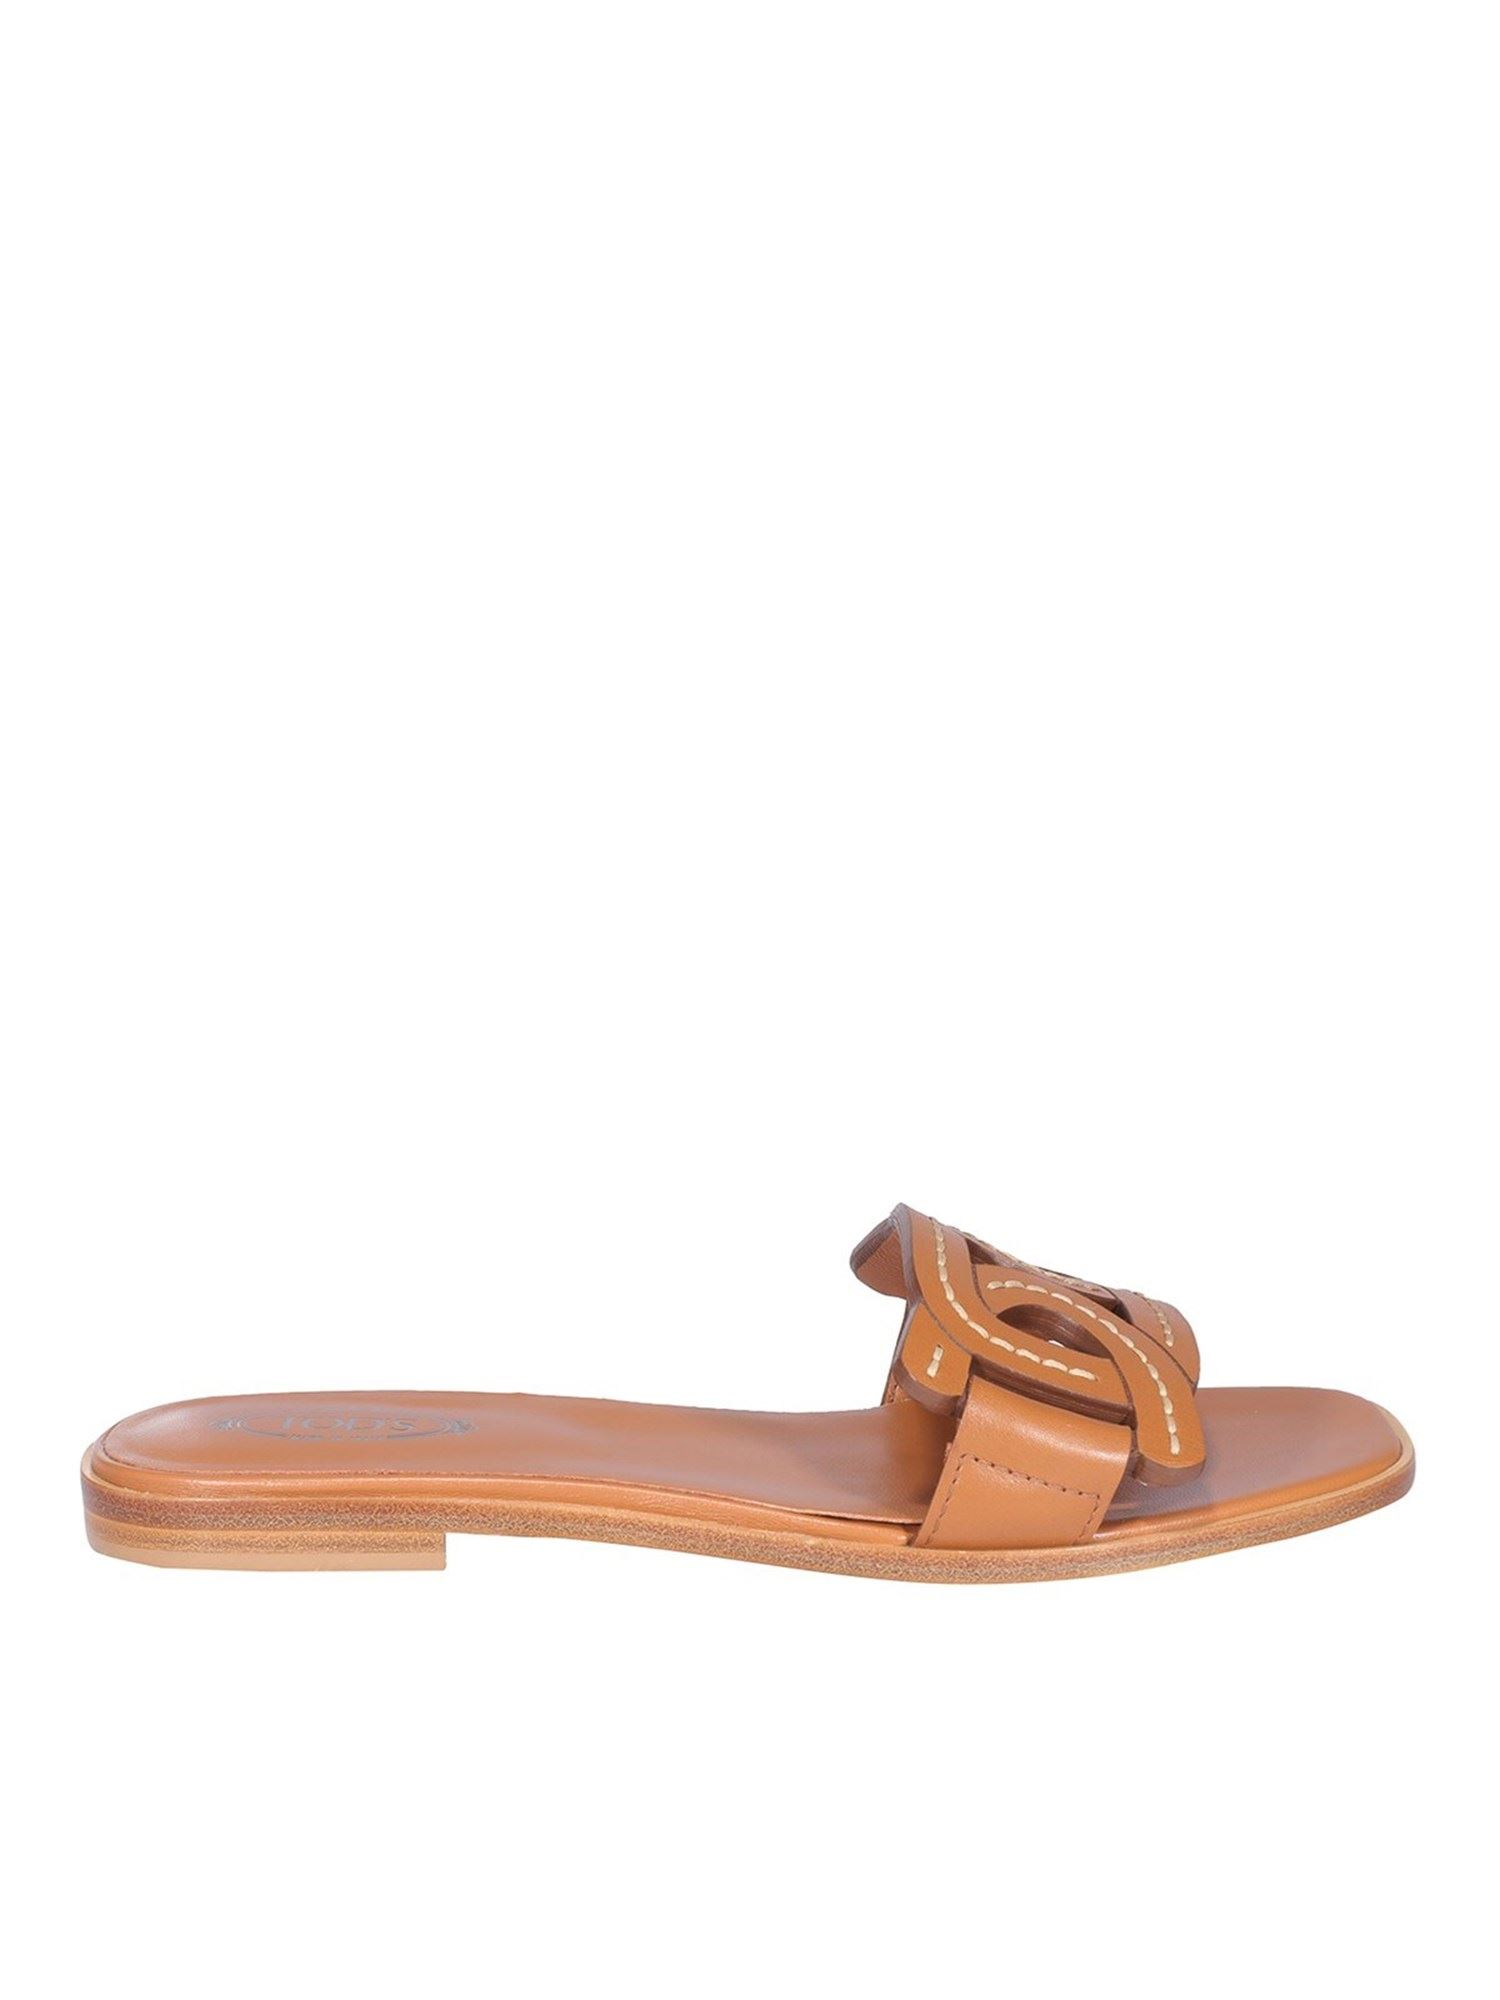 Tod's Leathers BROWN LEATHER SANDAL